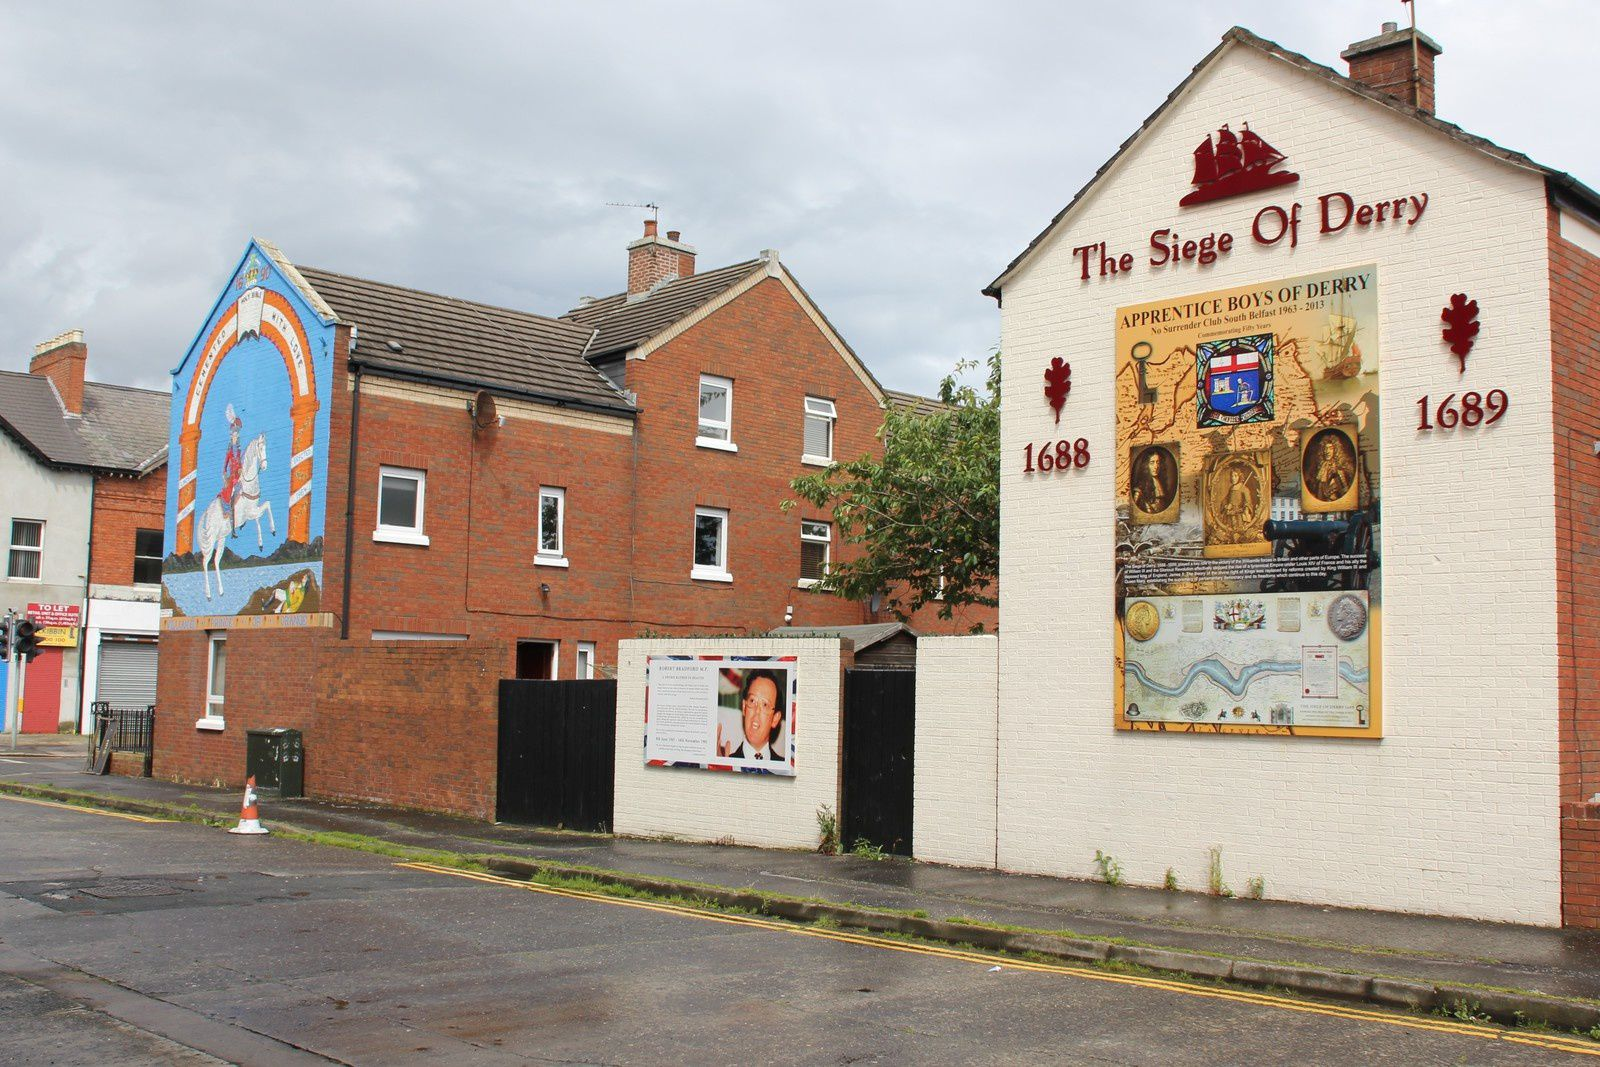 677) Donegall Pass, South Belfast